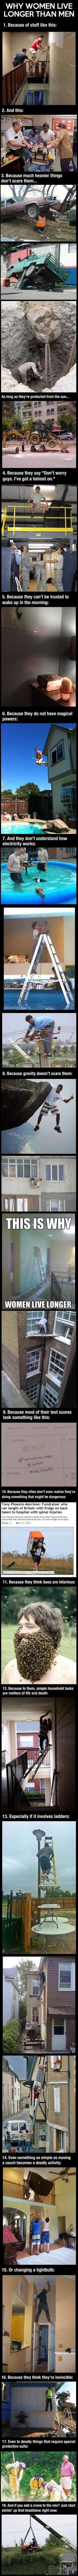 Funny Memes About This is Why Women Live Longer Than Men Super Funny, Really Funny, Funny Cute, The Funny, Funny Images, Funny Pictures, Lol, Live Long, Just For Laughs